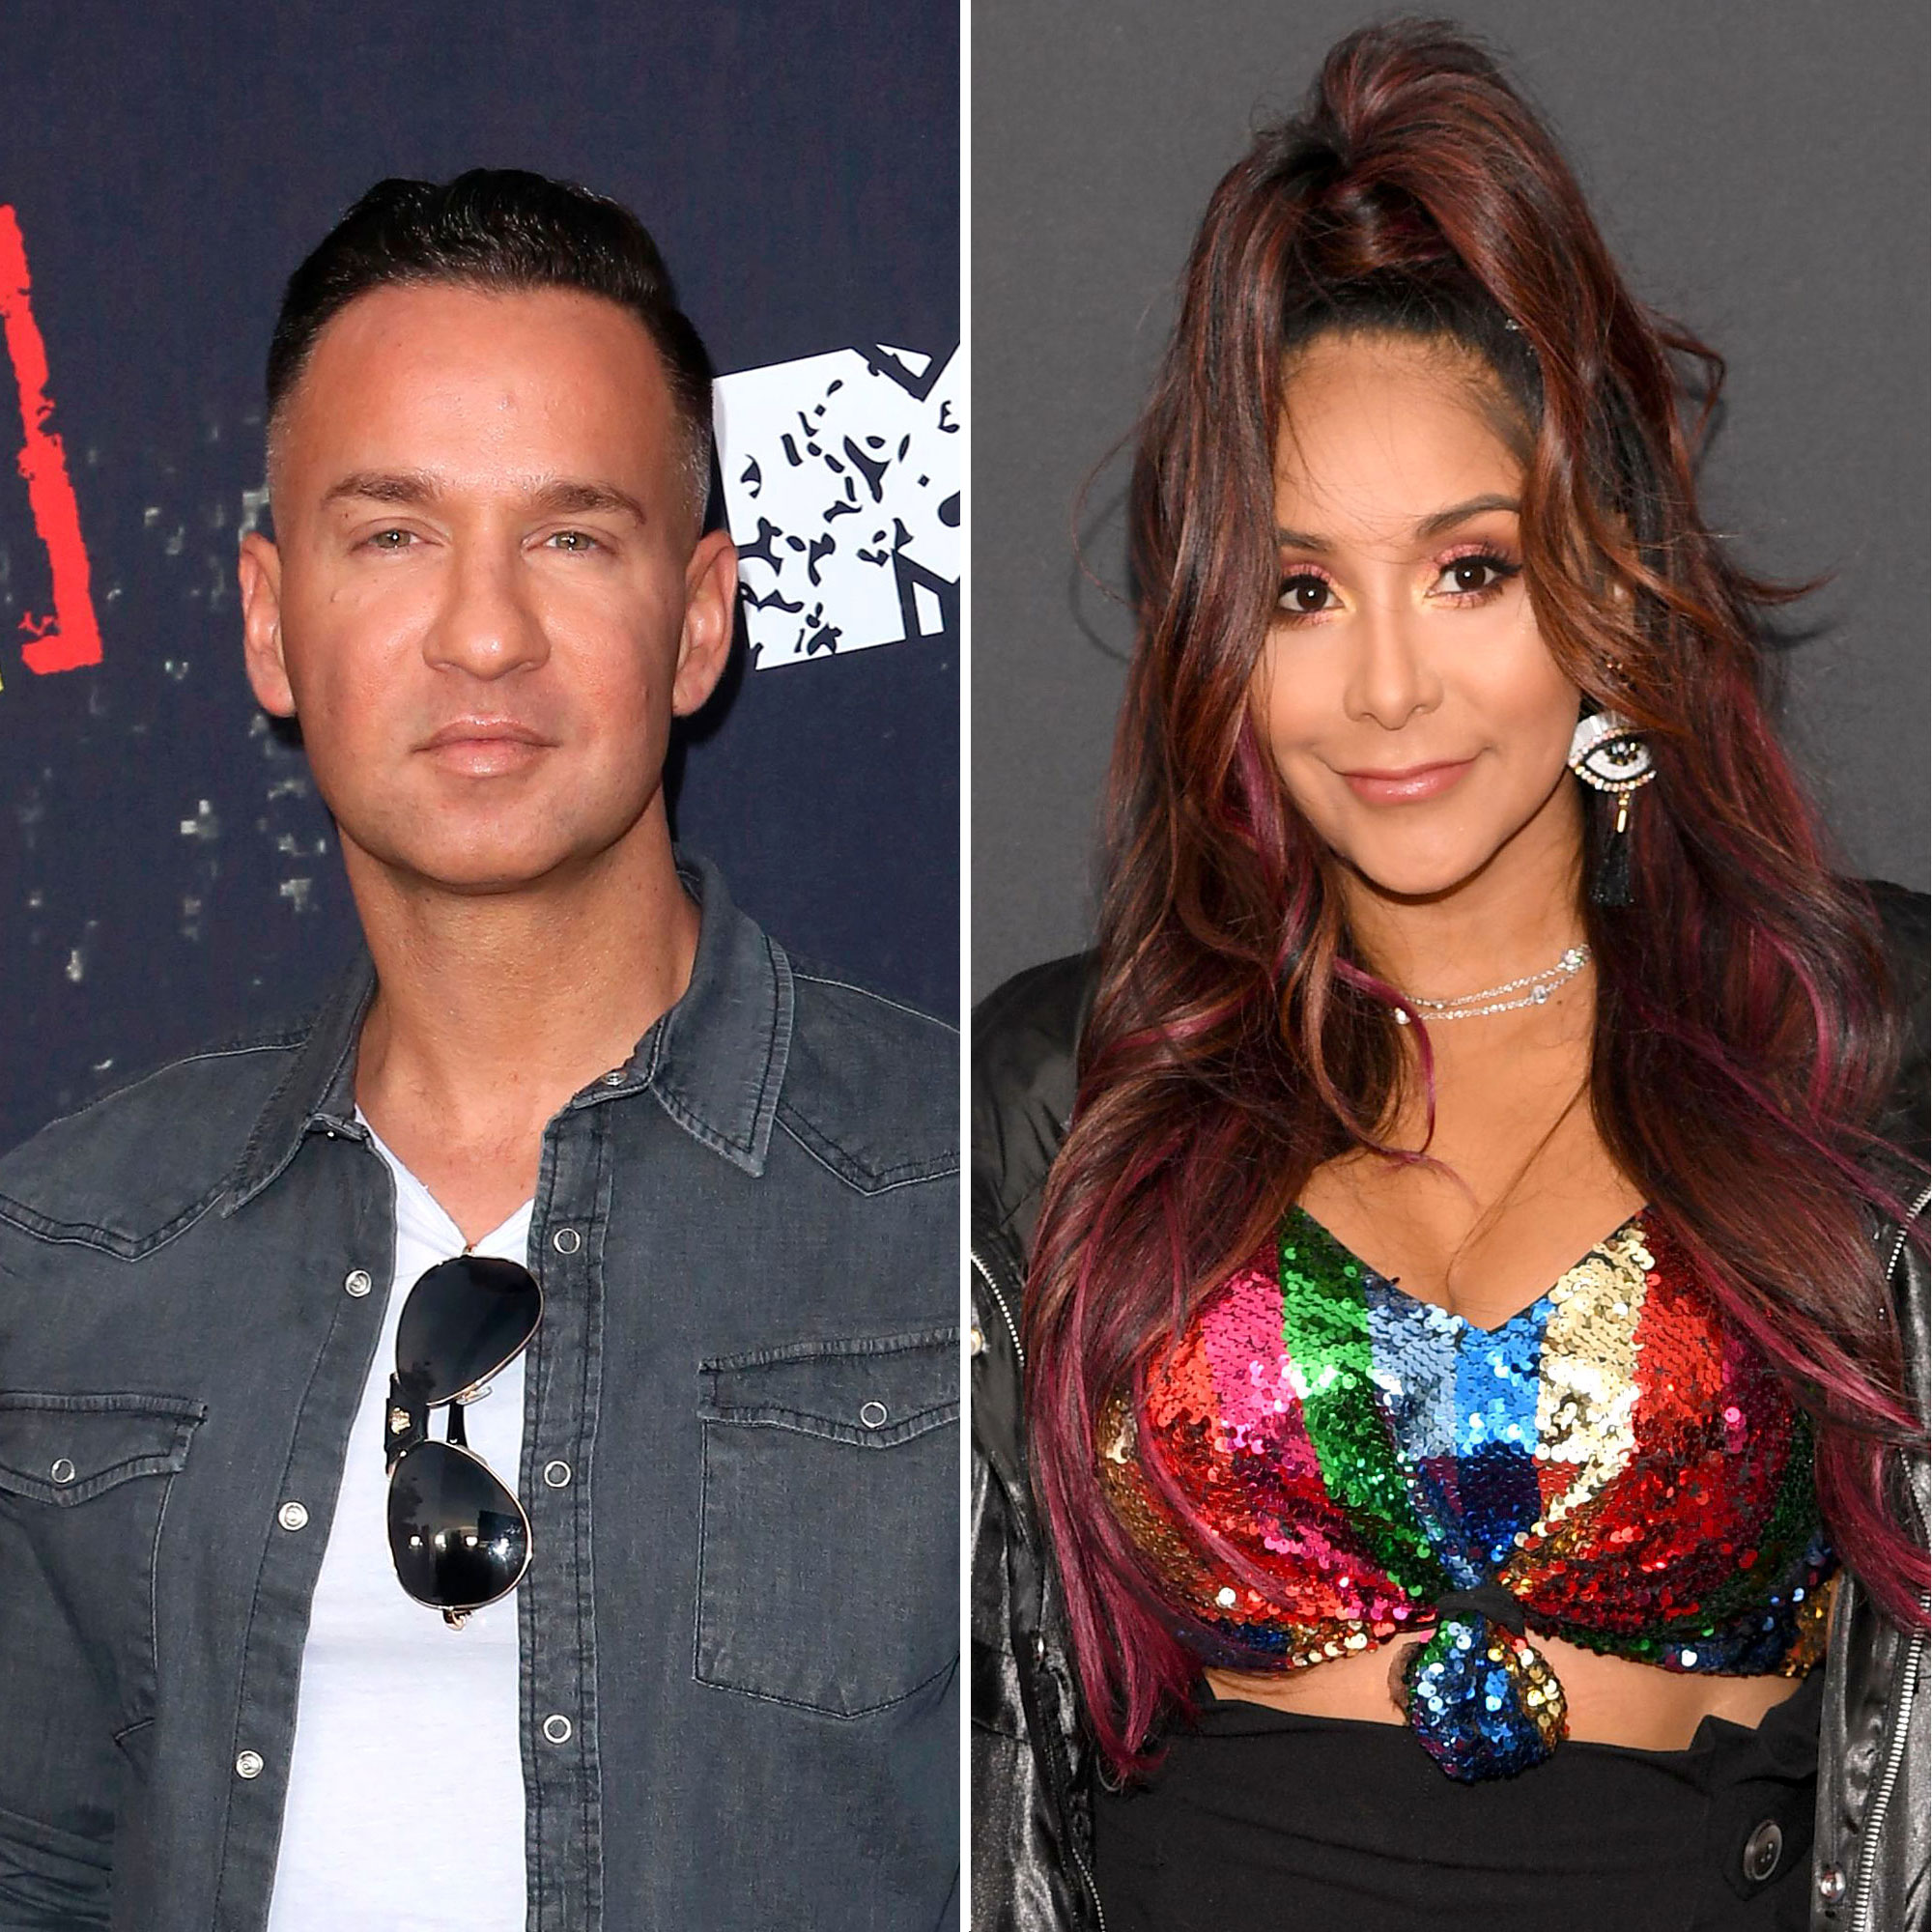 Snooki Told The Situation She Wants to Come Back to 'Jersey Shore'